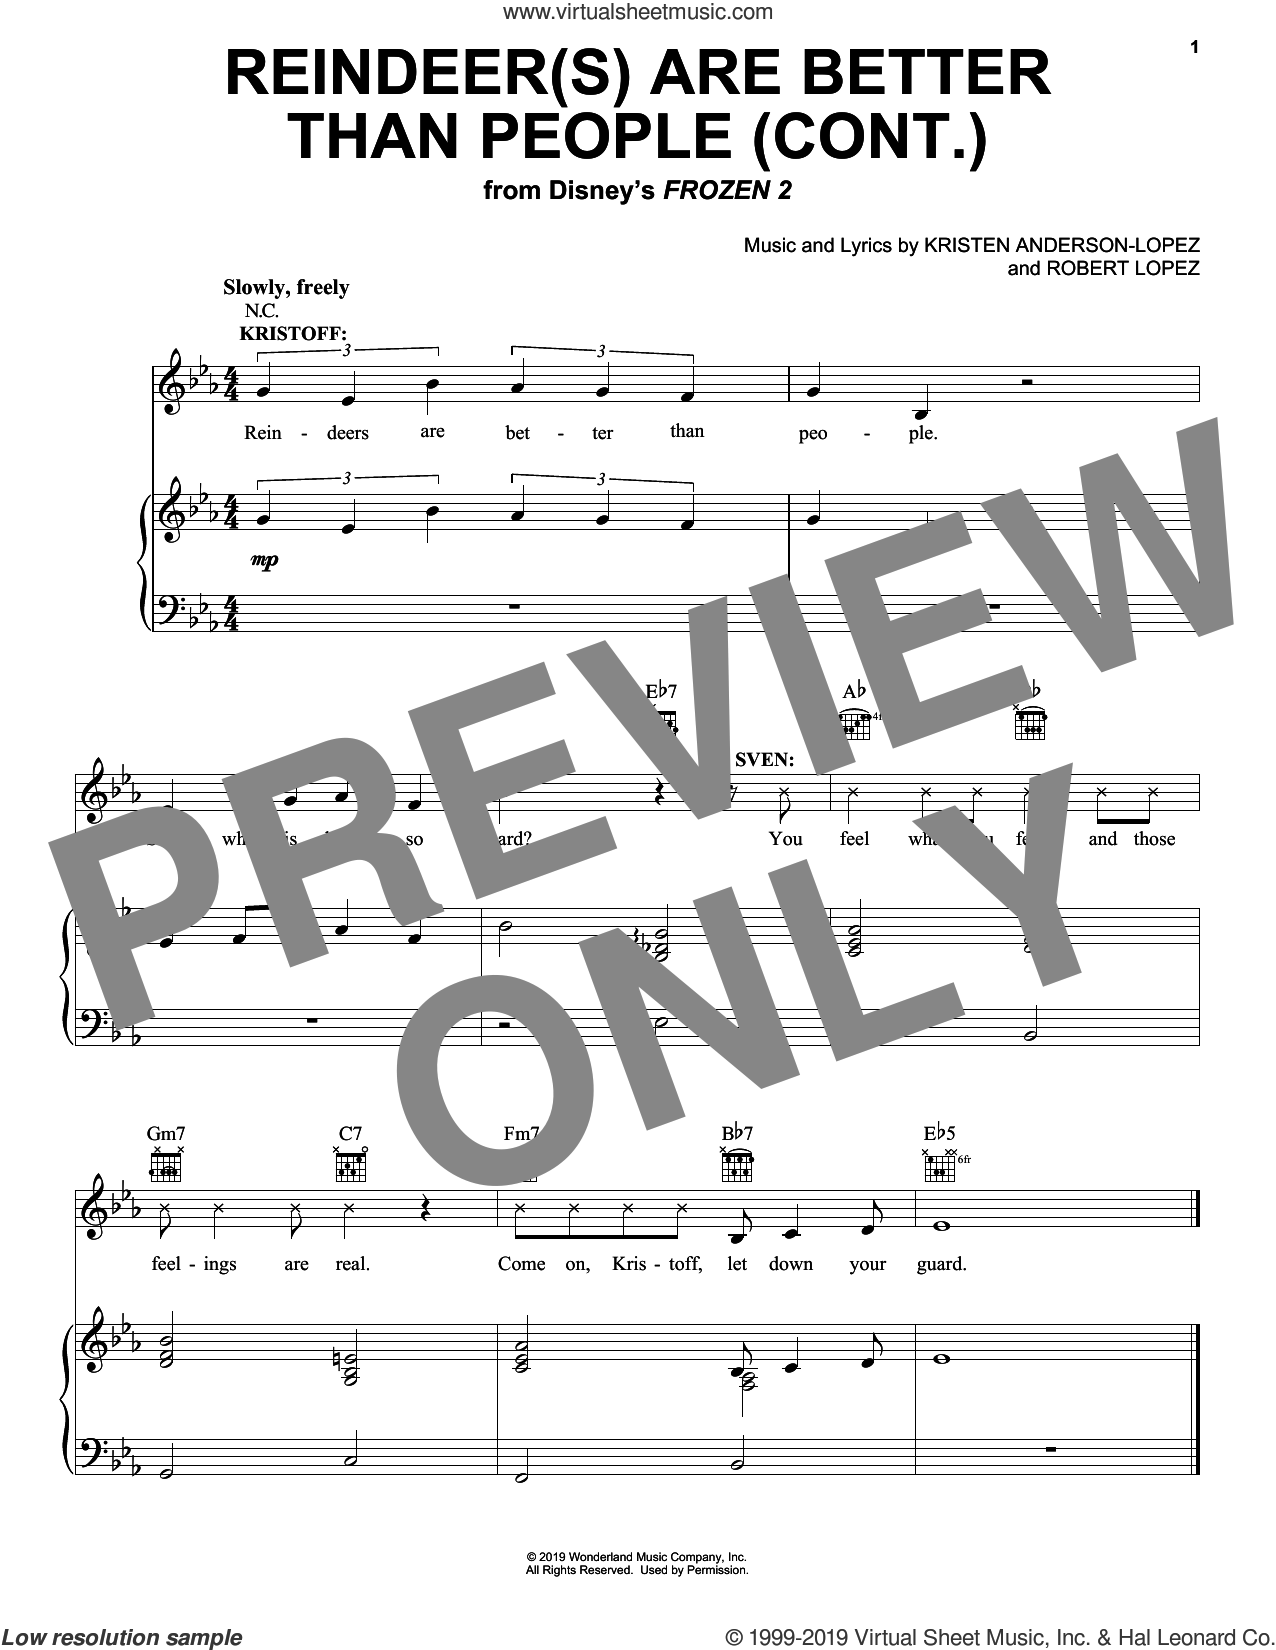 Reindeer(s) Are Better Than People (Cont.) (from Disney's Frozen 2) sheet music for voice, piano or guitar by Jonathan Groff, Kristen Anderson-Lopez and Robert Lopez, intermediate skill level